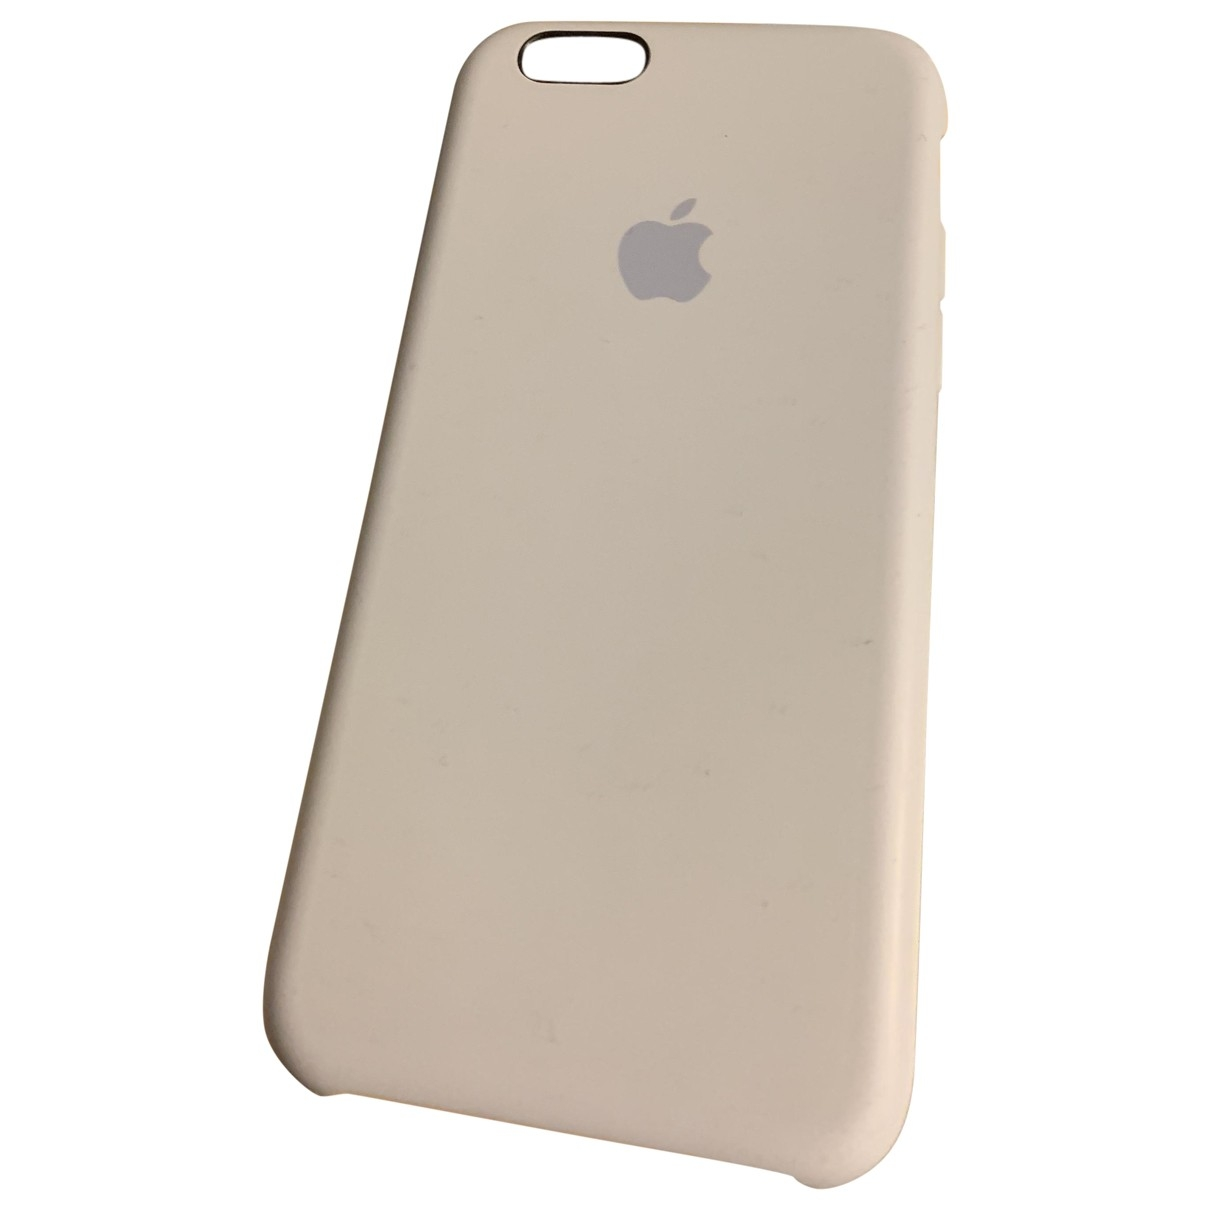 Apple \N Beige Accessories for Life & Living \N